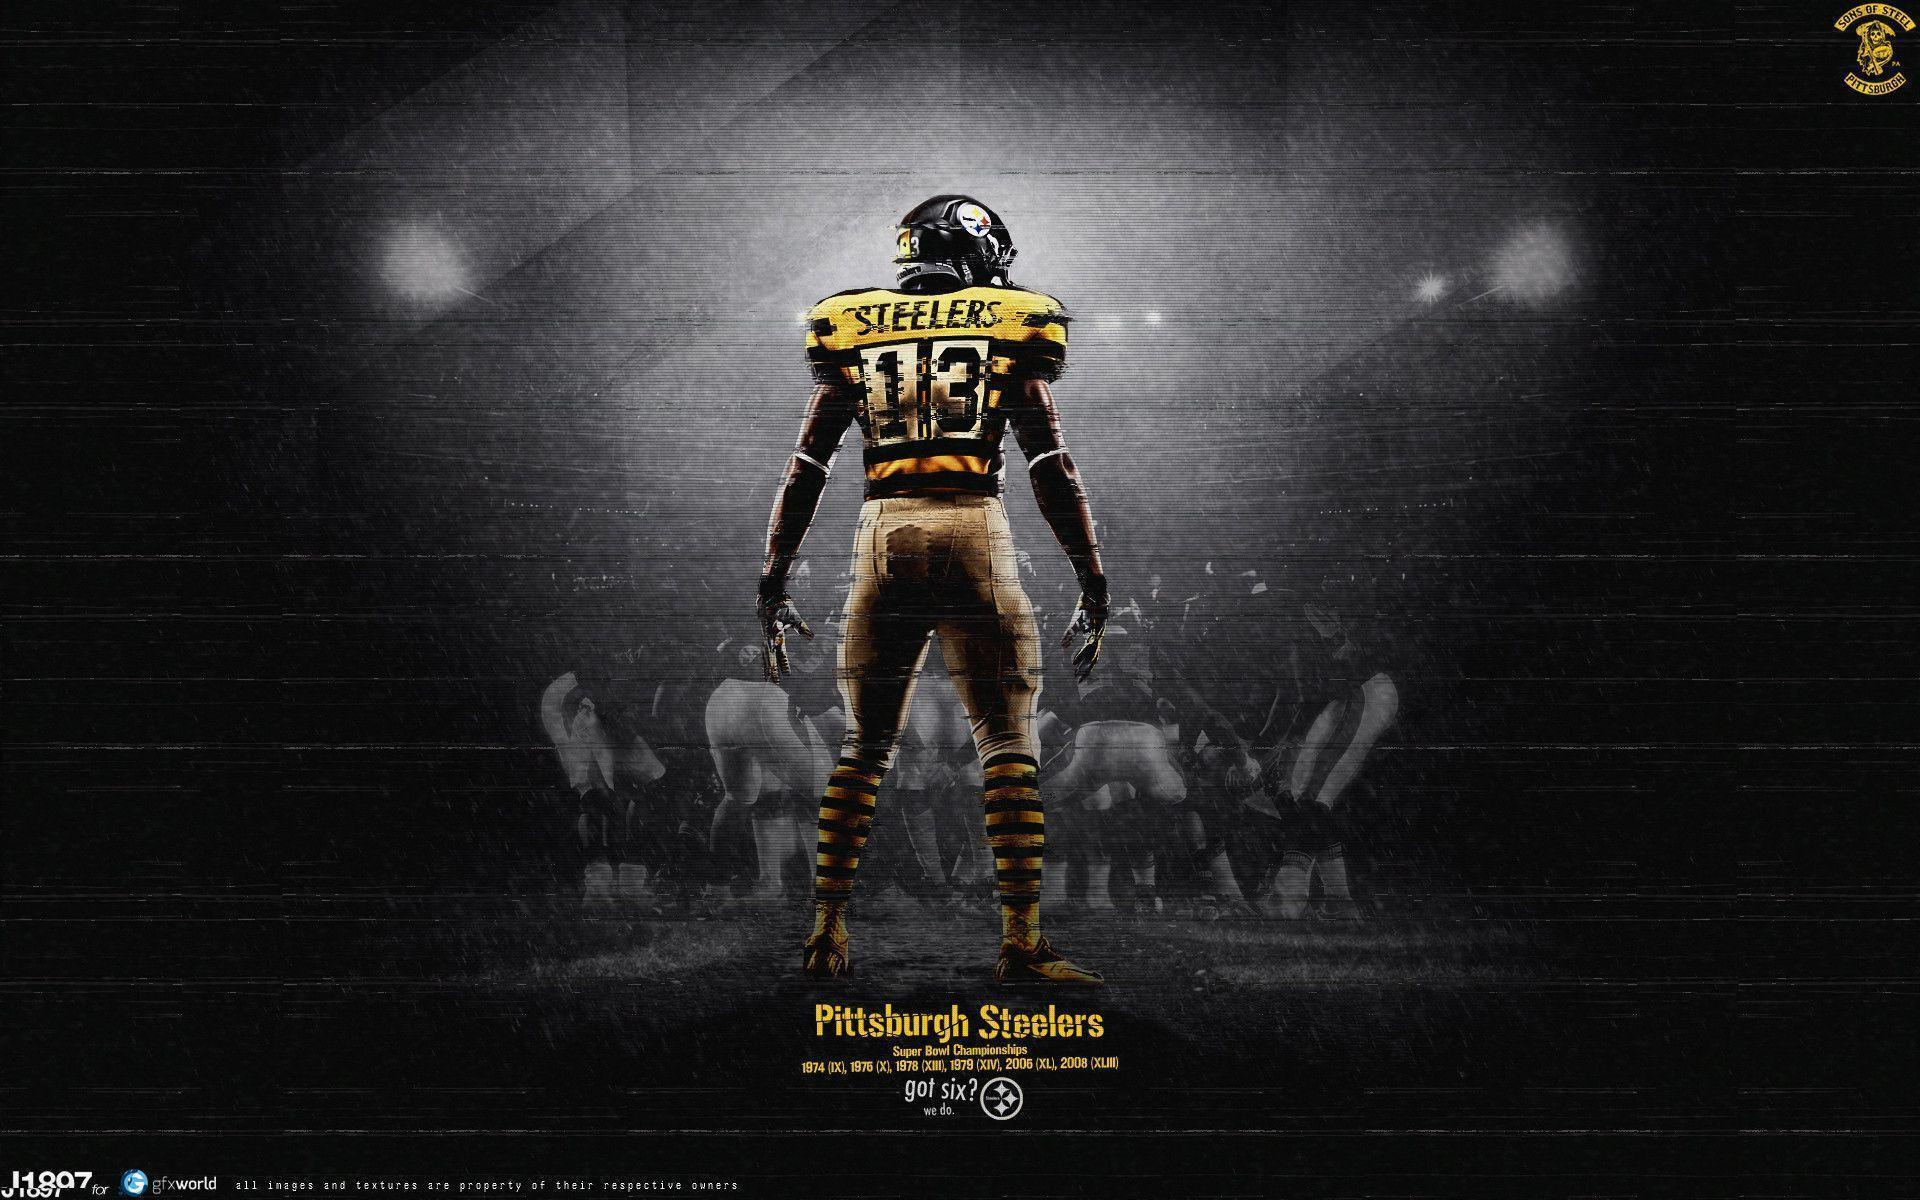 Pittsburgh Steelers wallpaper dwonload | What Wallpaper